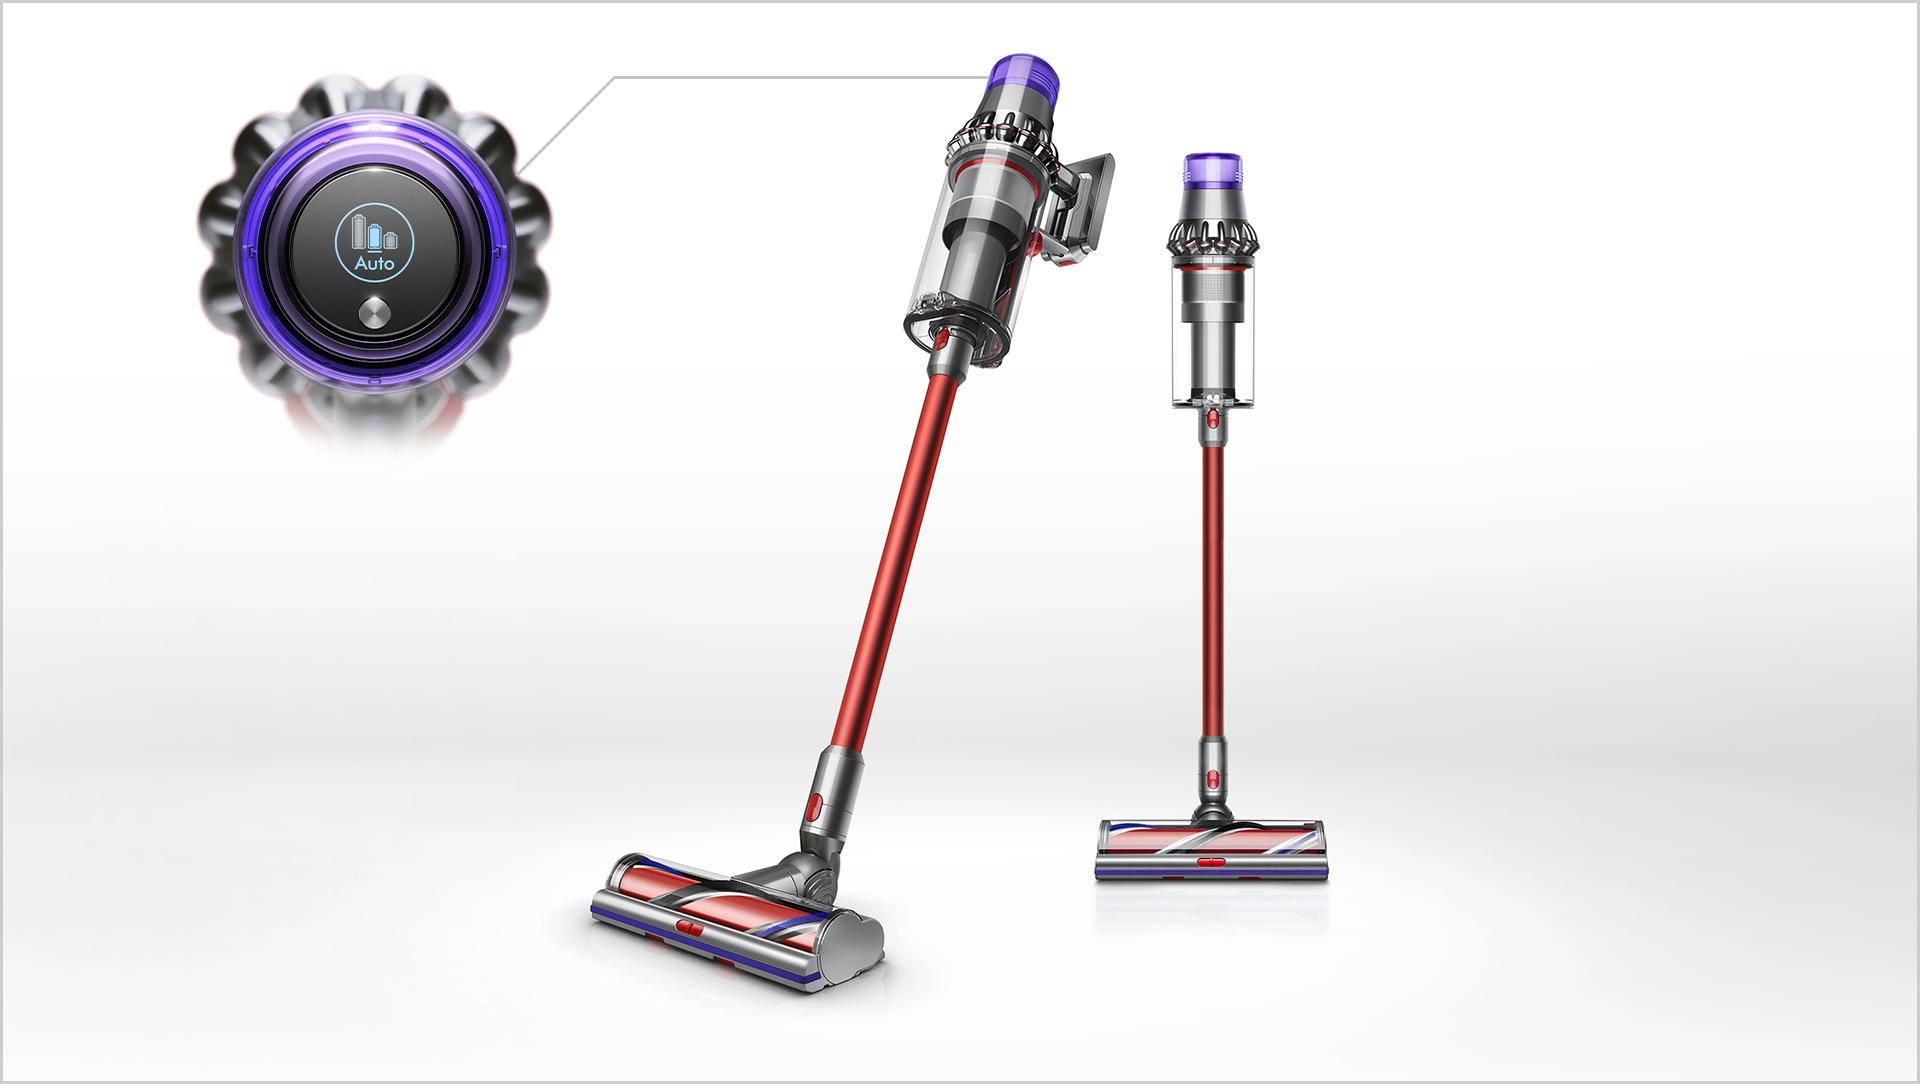 Dyson Outsize vaccum cleaner lifting dirt from floor